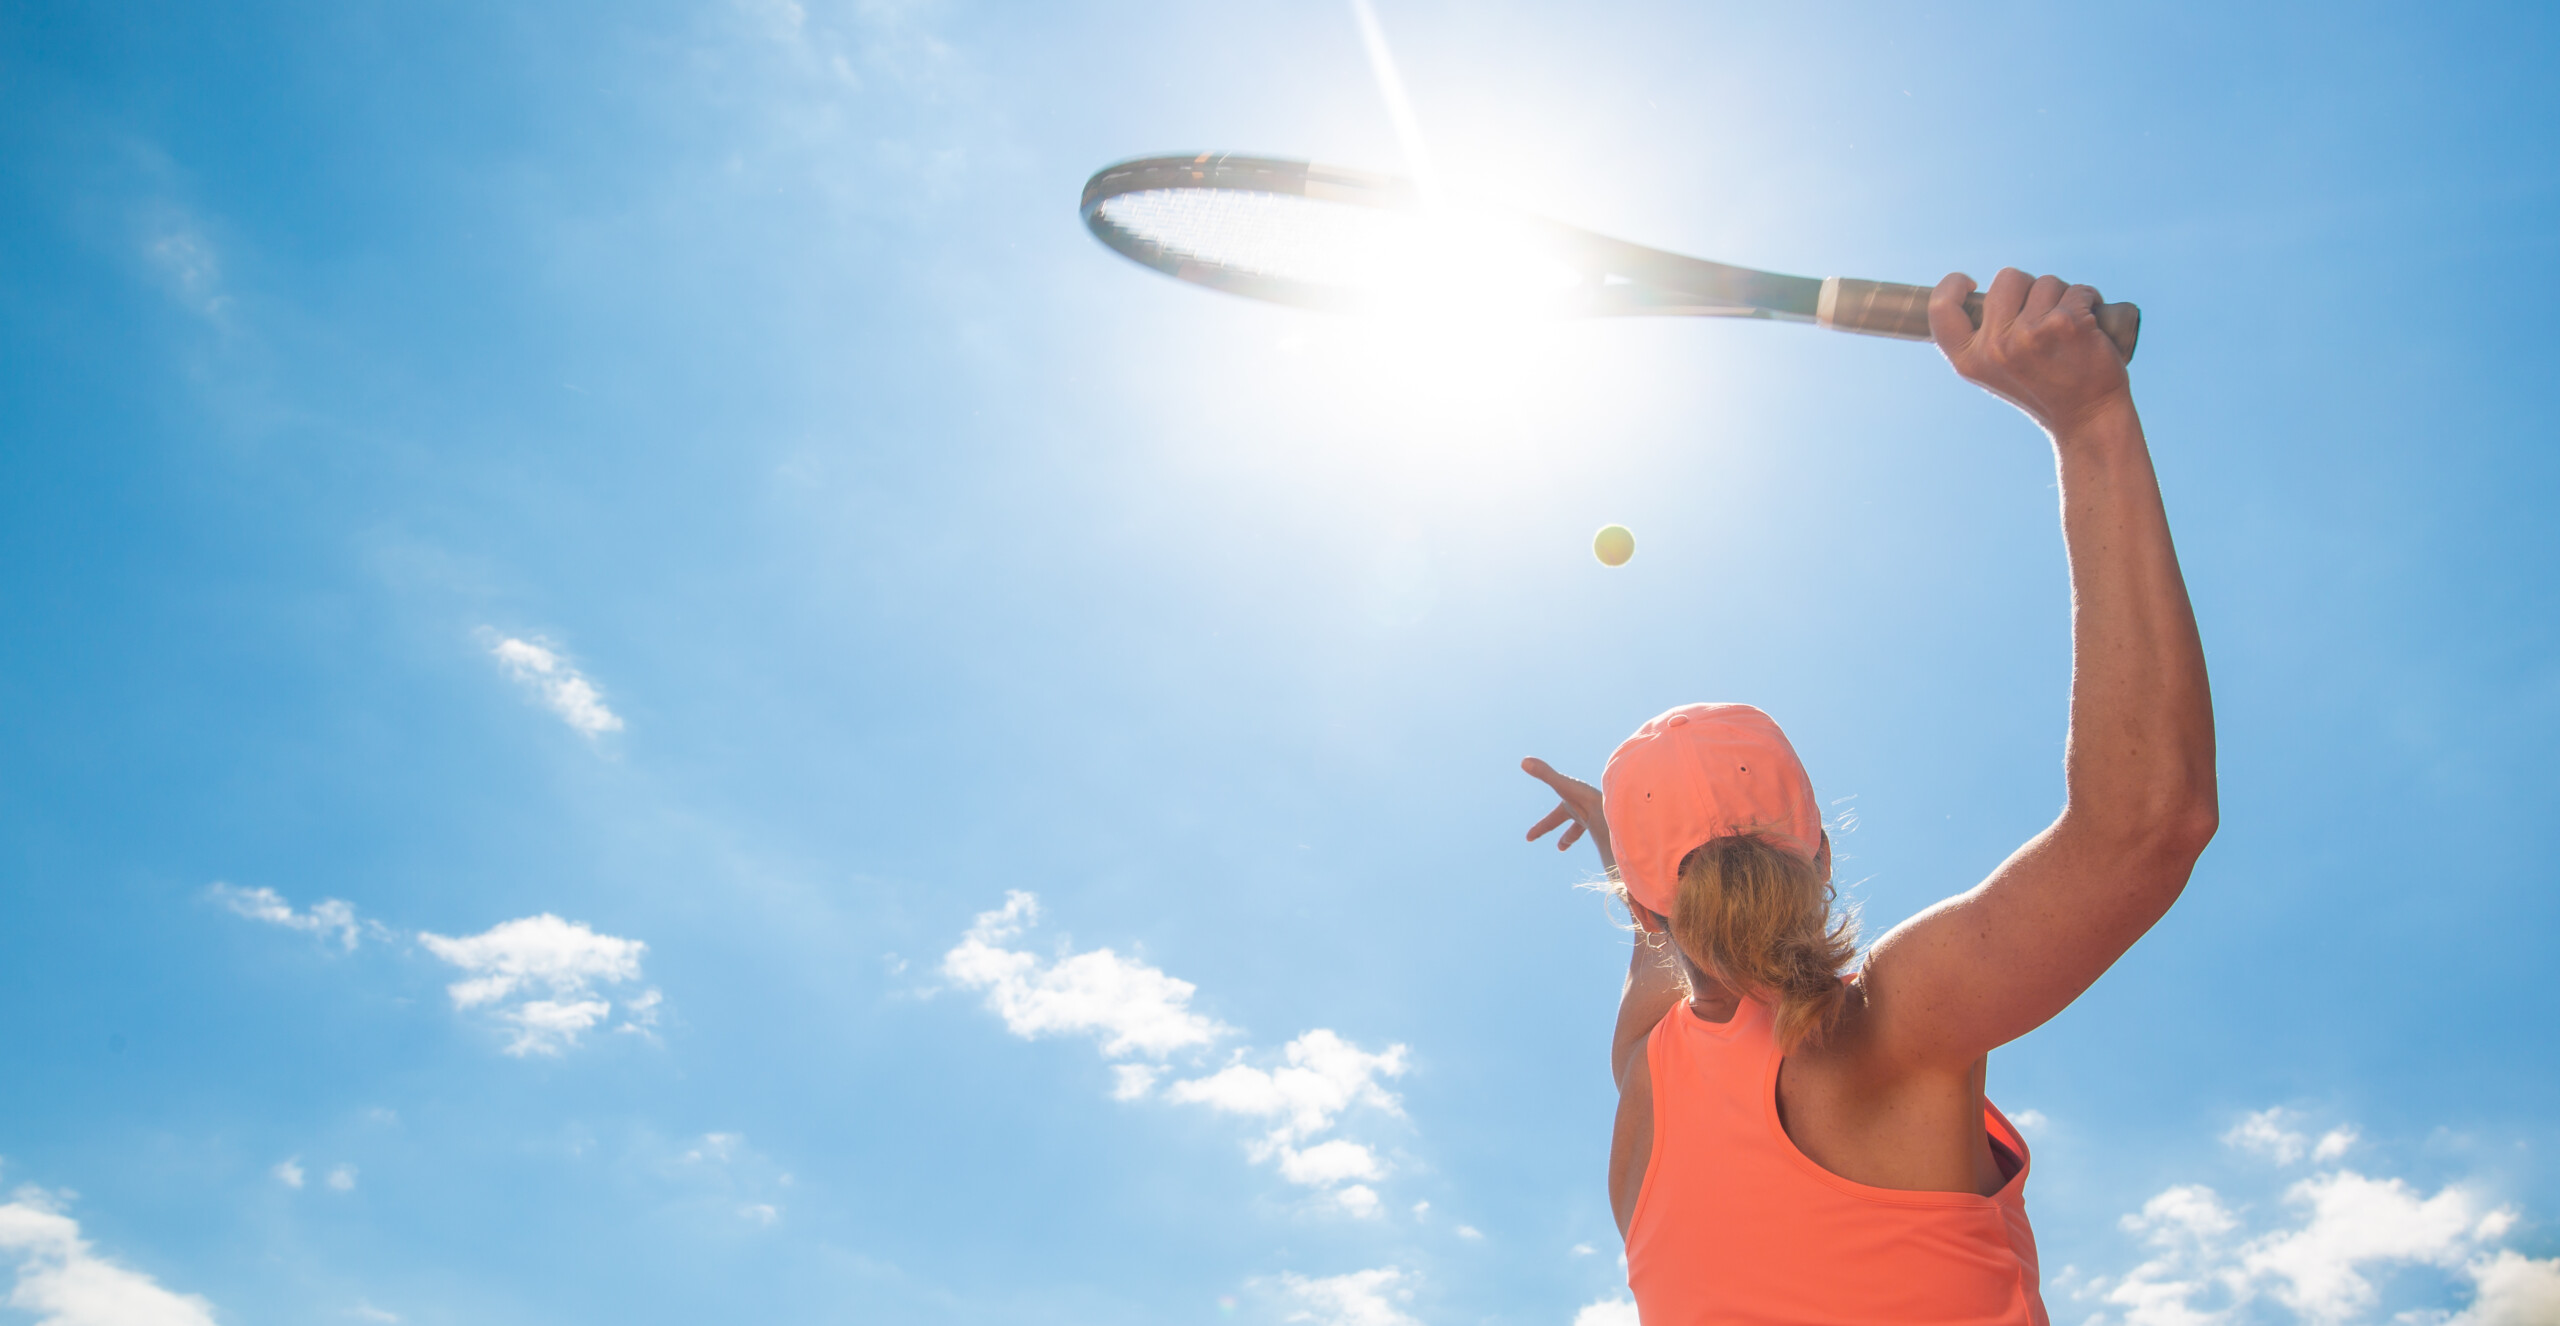 Professional tennis woman player in action playing tennis in tennis court outdoor, sport concept, copyspace